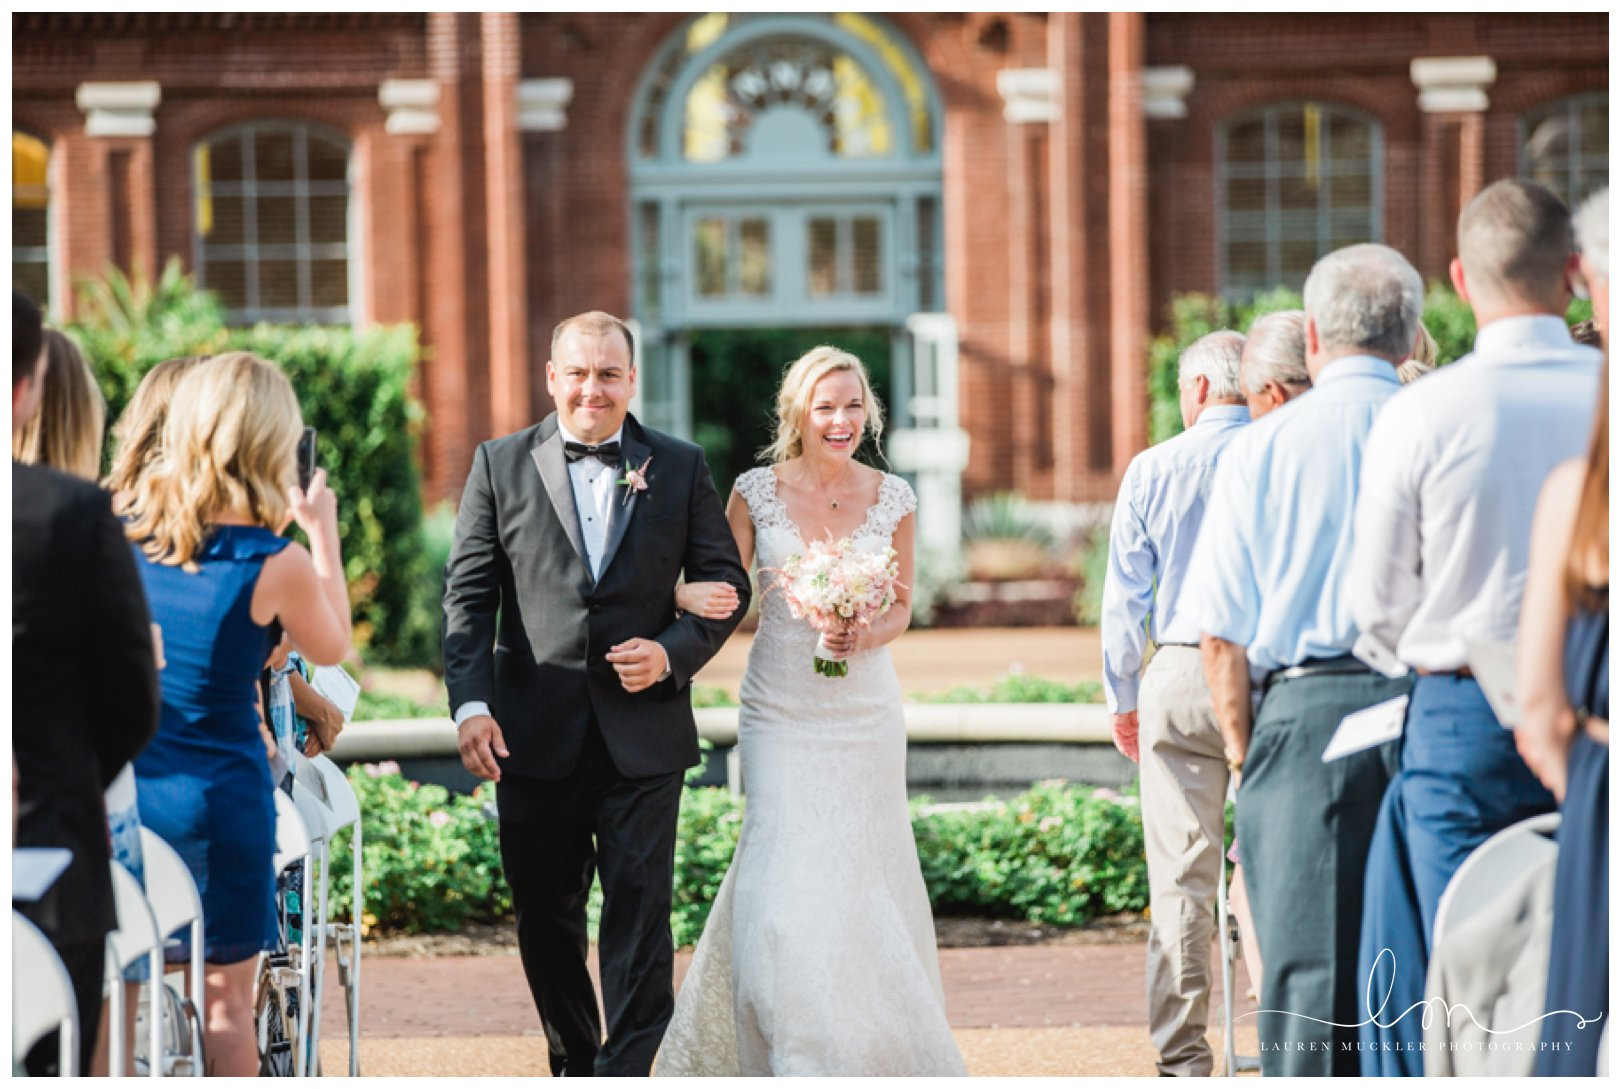 lauren muckler photography_fine art film wedding photography_st louis_photography_0658.jpg